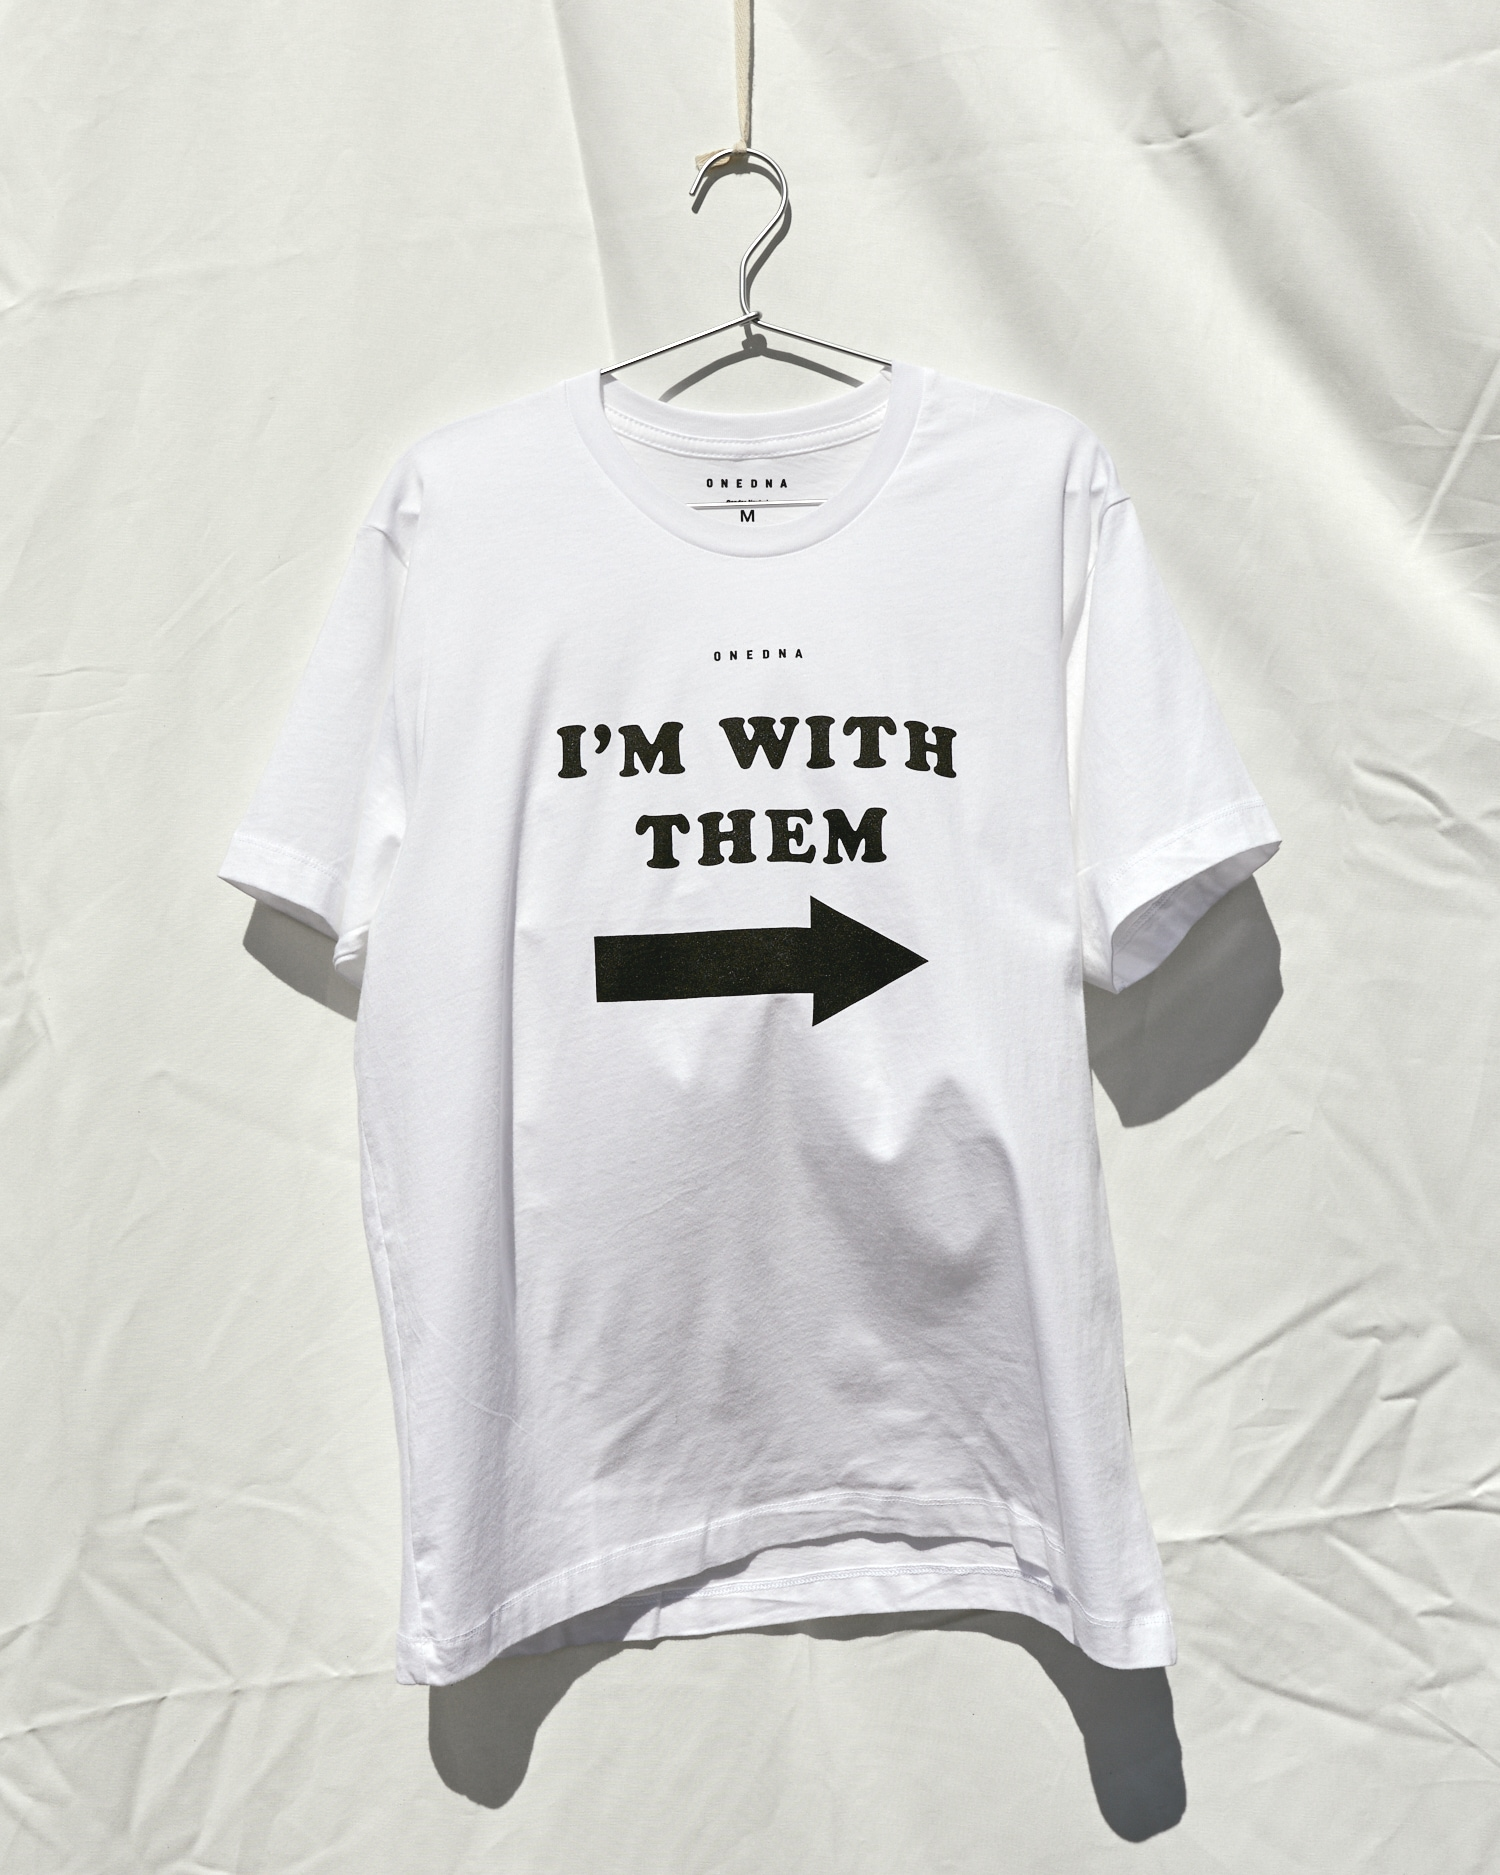 Shop Non Binary I'm With Them T-shirt By Genderless Fashion Brand One DNA